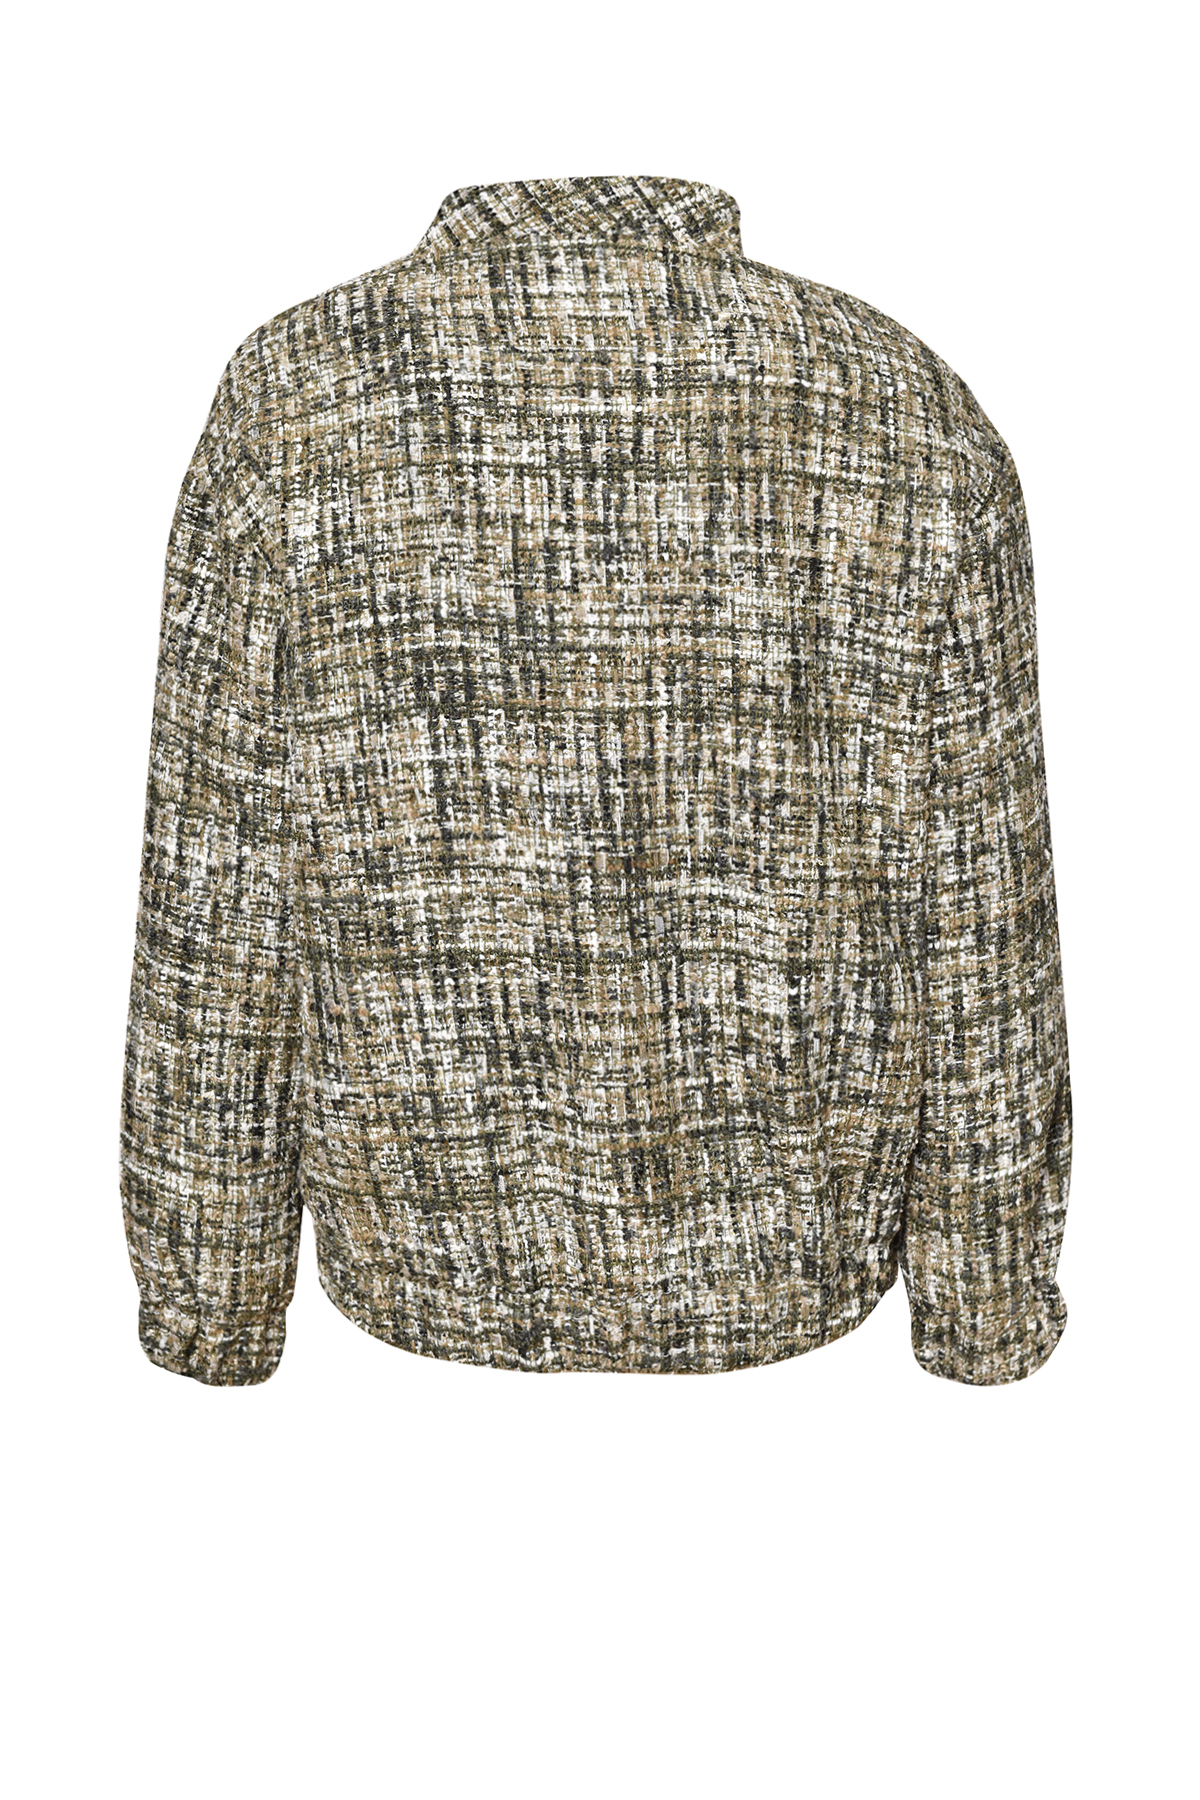 Bomber Jacket - Khaki by Sorbé on curated-crowd.com